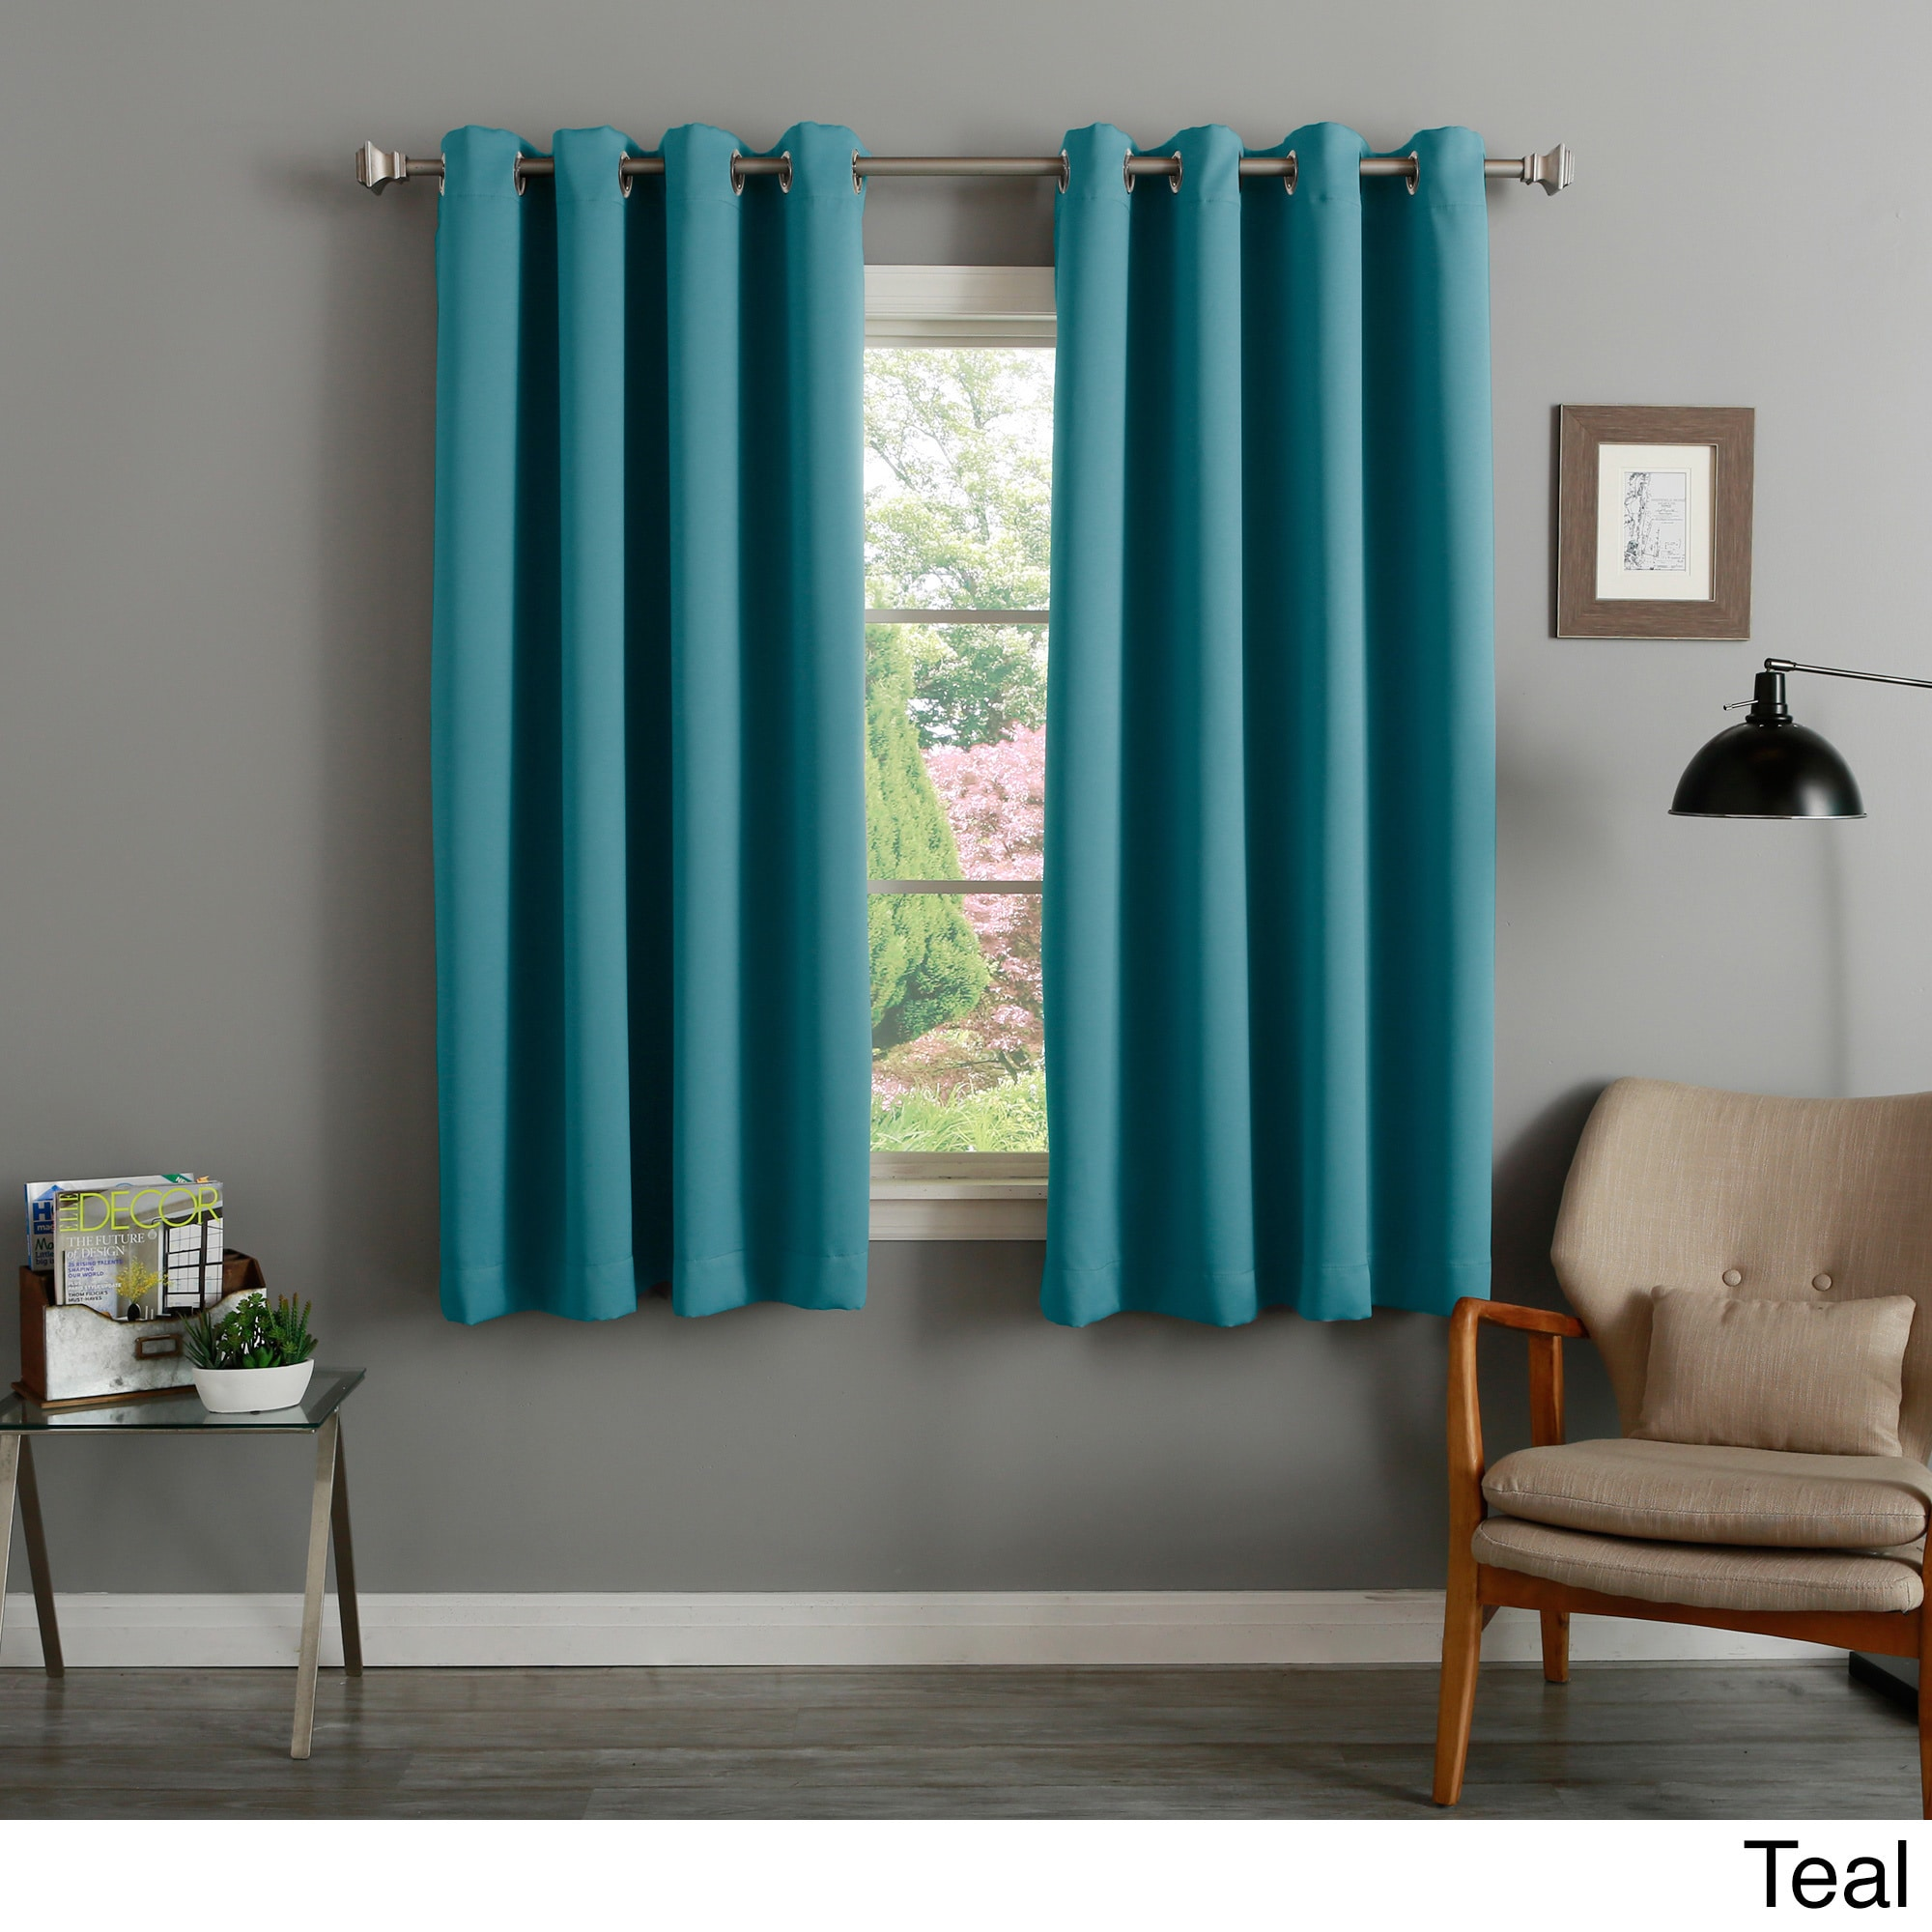 Teal Blackout Curtains Aurora Home Silver Grommet Top 63 Inch Blackout Curtain Pair 52 X 63